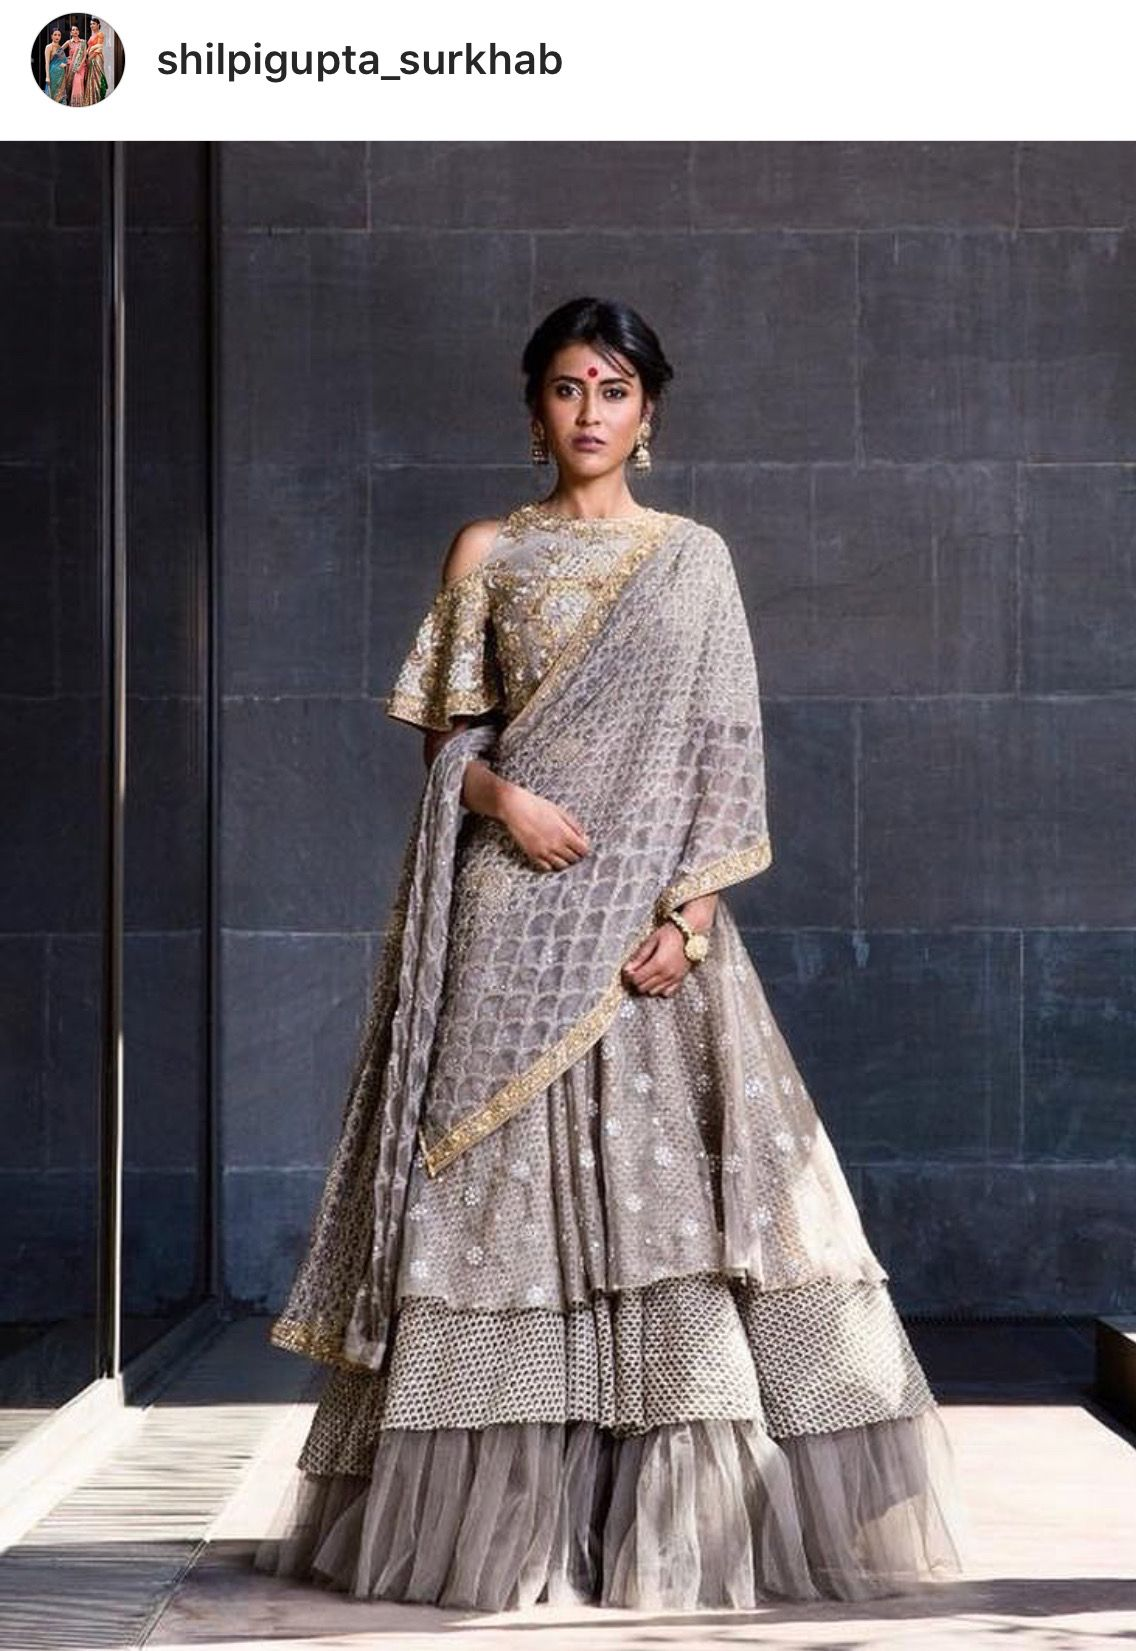 Pakistani bridal couture indian lehenga wedding saree blouse choli also pin by waseem chaudhary on dresses in pinterest rh